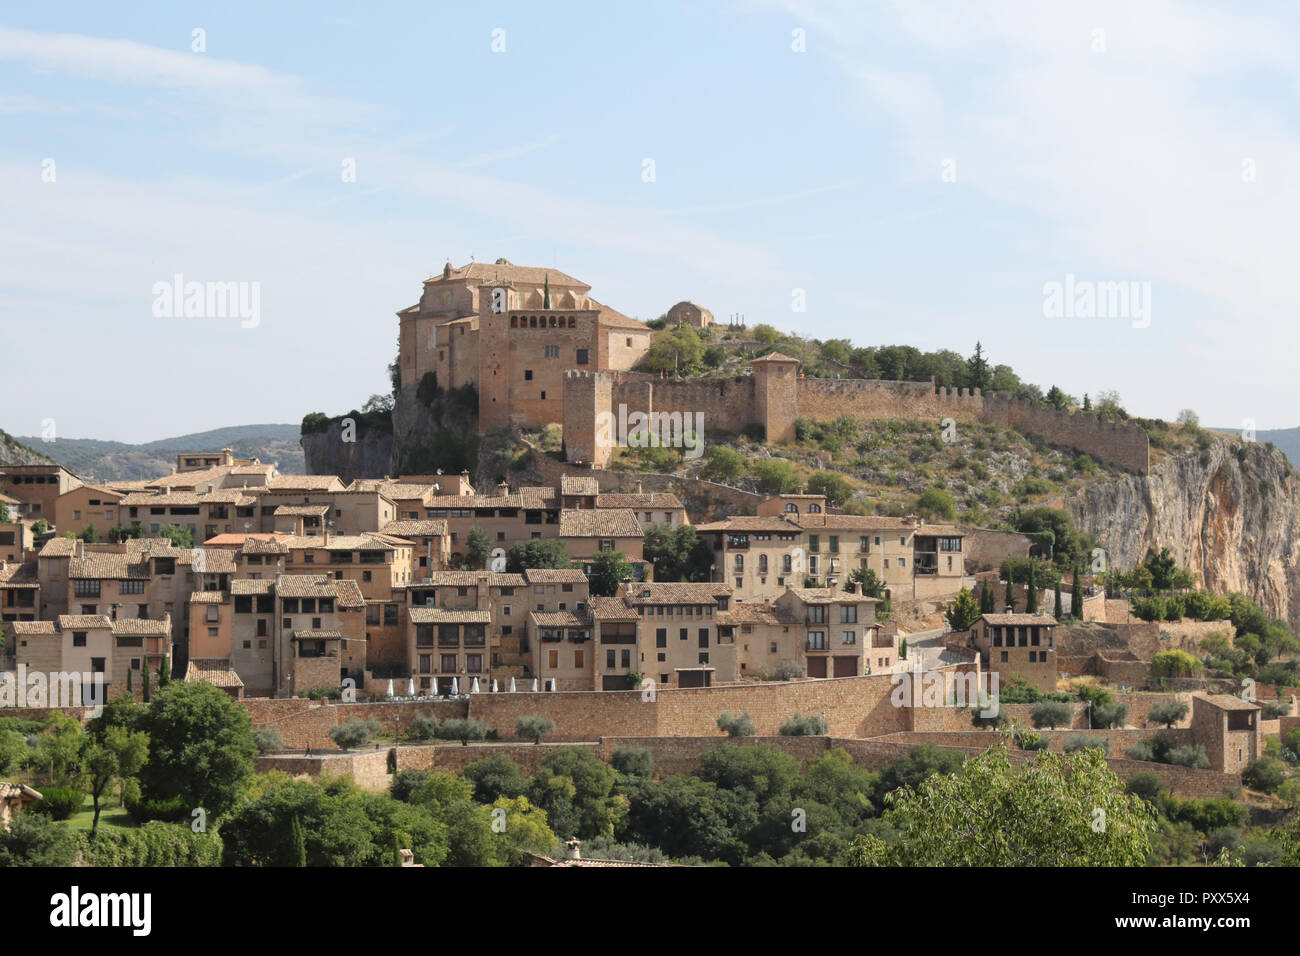 A summer landscape of Alquezar, a small medieval rural town with a castle, a collegiate and a canyon in the Vero river, in Aragon, Spain. Stock Photo